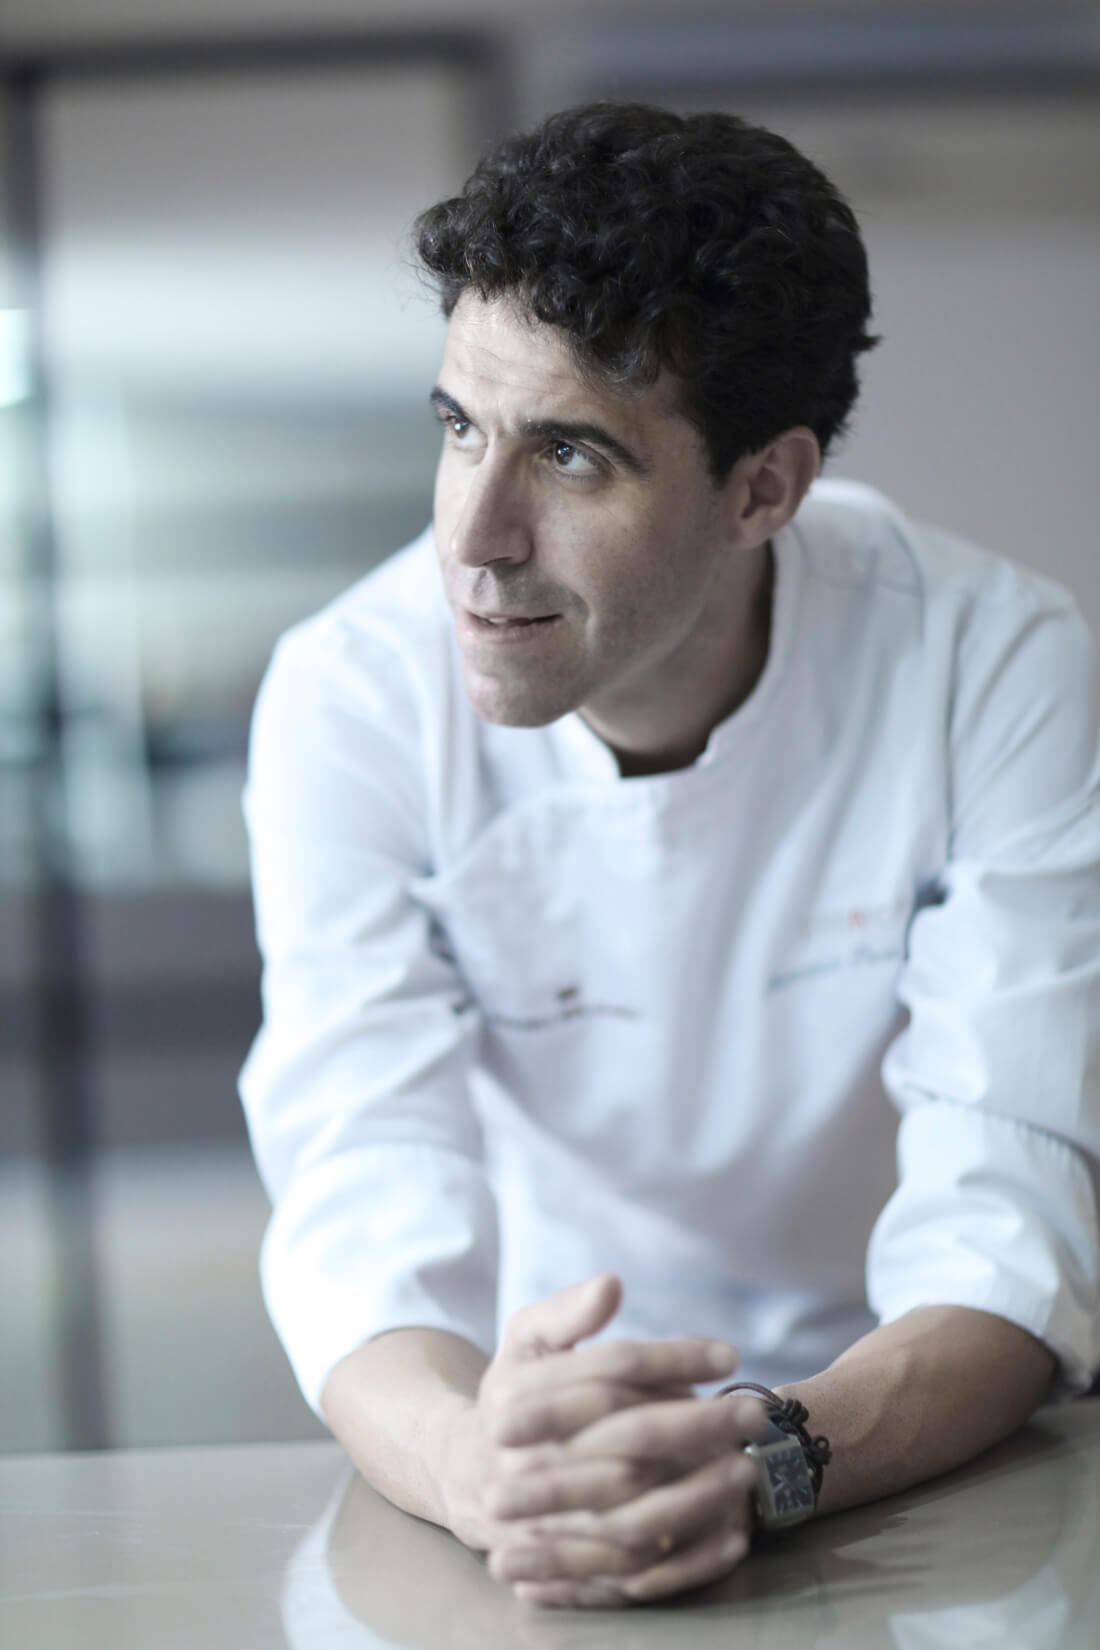 A photograph of Fernando P. Arellano, chef of the Restaurant Zaranda, in his kitchen at the Castell Son Claret